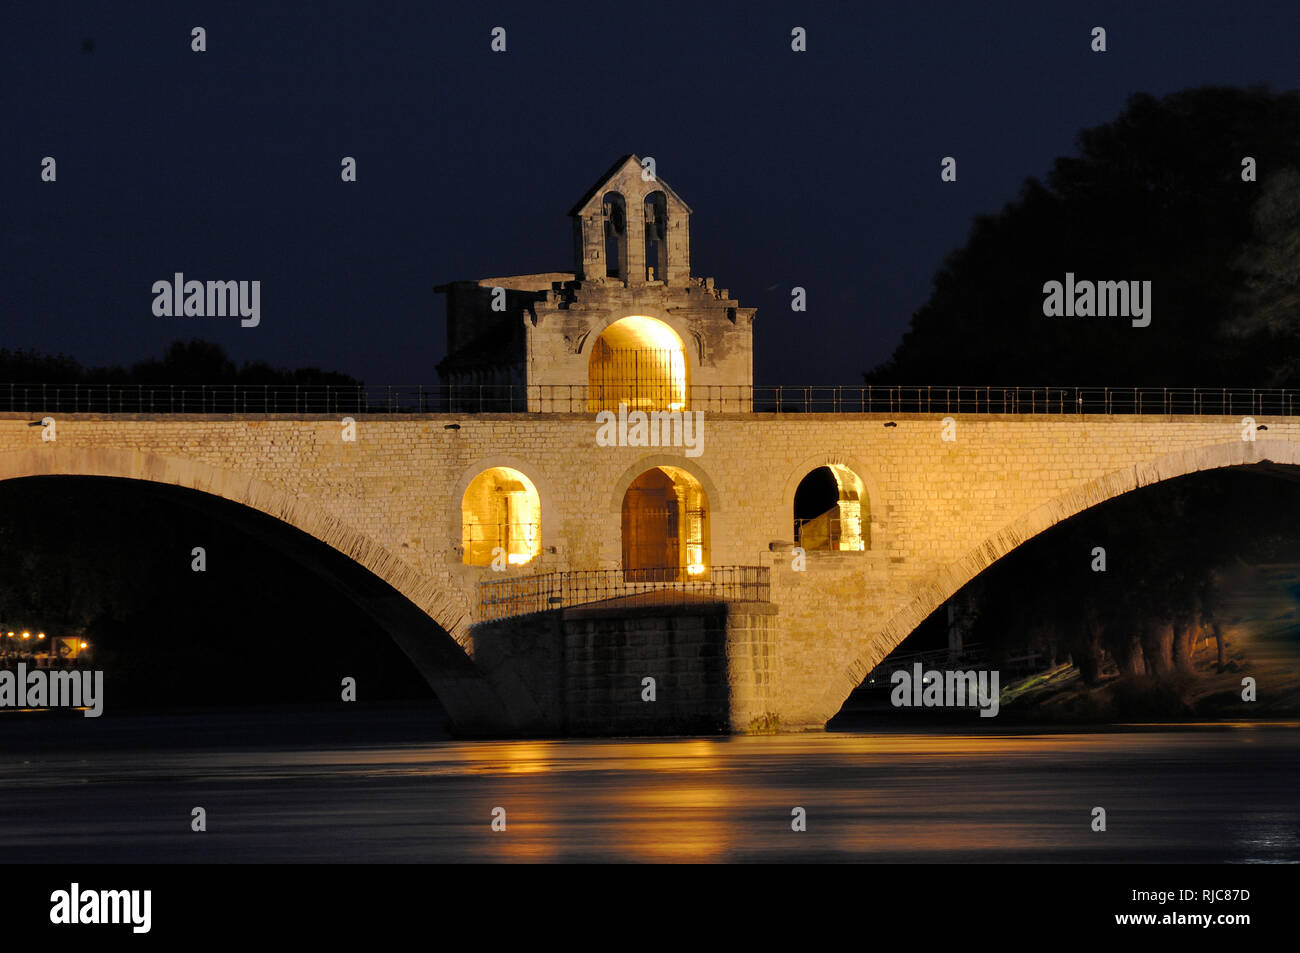 Night View of the Medieval Pont d'Avignon, Pont Saint Benezet or Pont Saint-Bénézet over the River Rhône Avignon Vaucluse Provence France - Stock Image